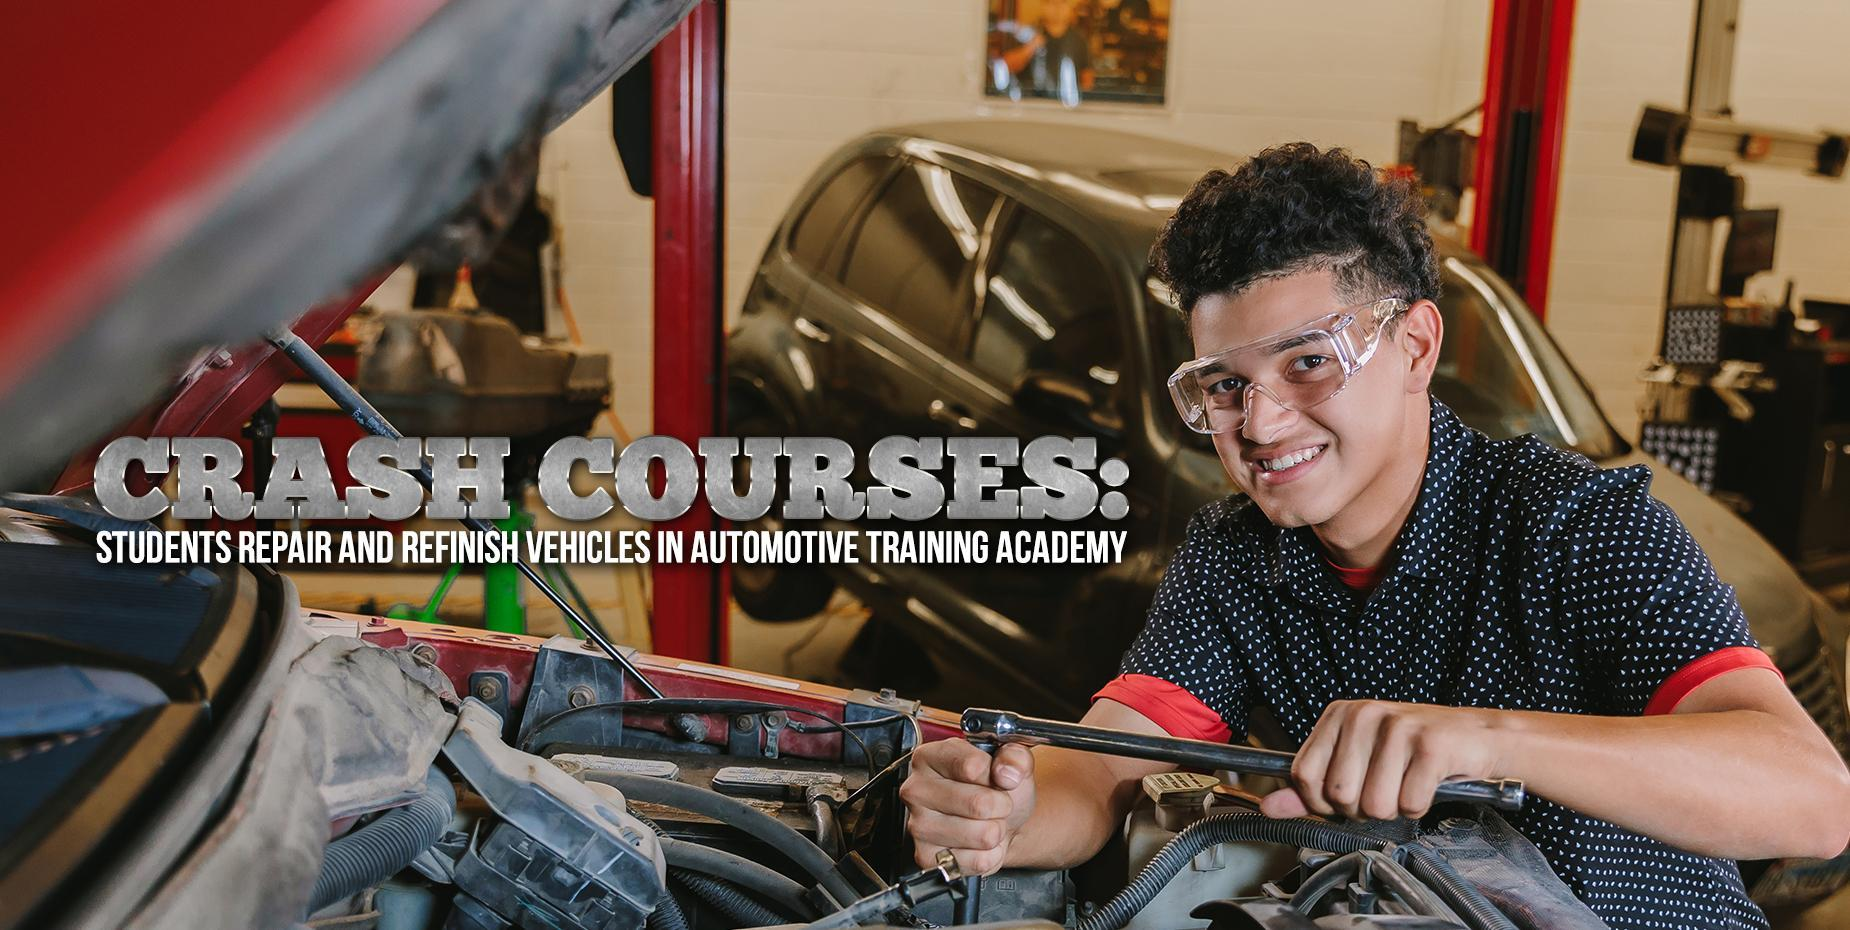 Crash Courses: Students repair and refinish vehicles in Automotive Training Academy